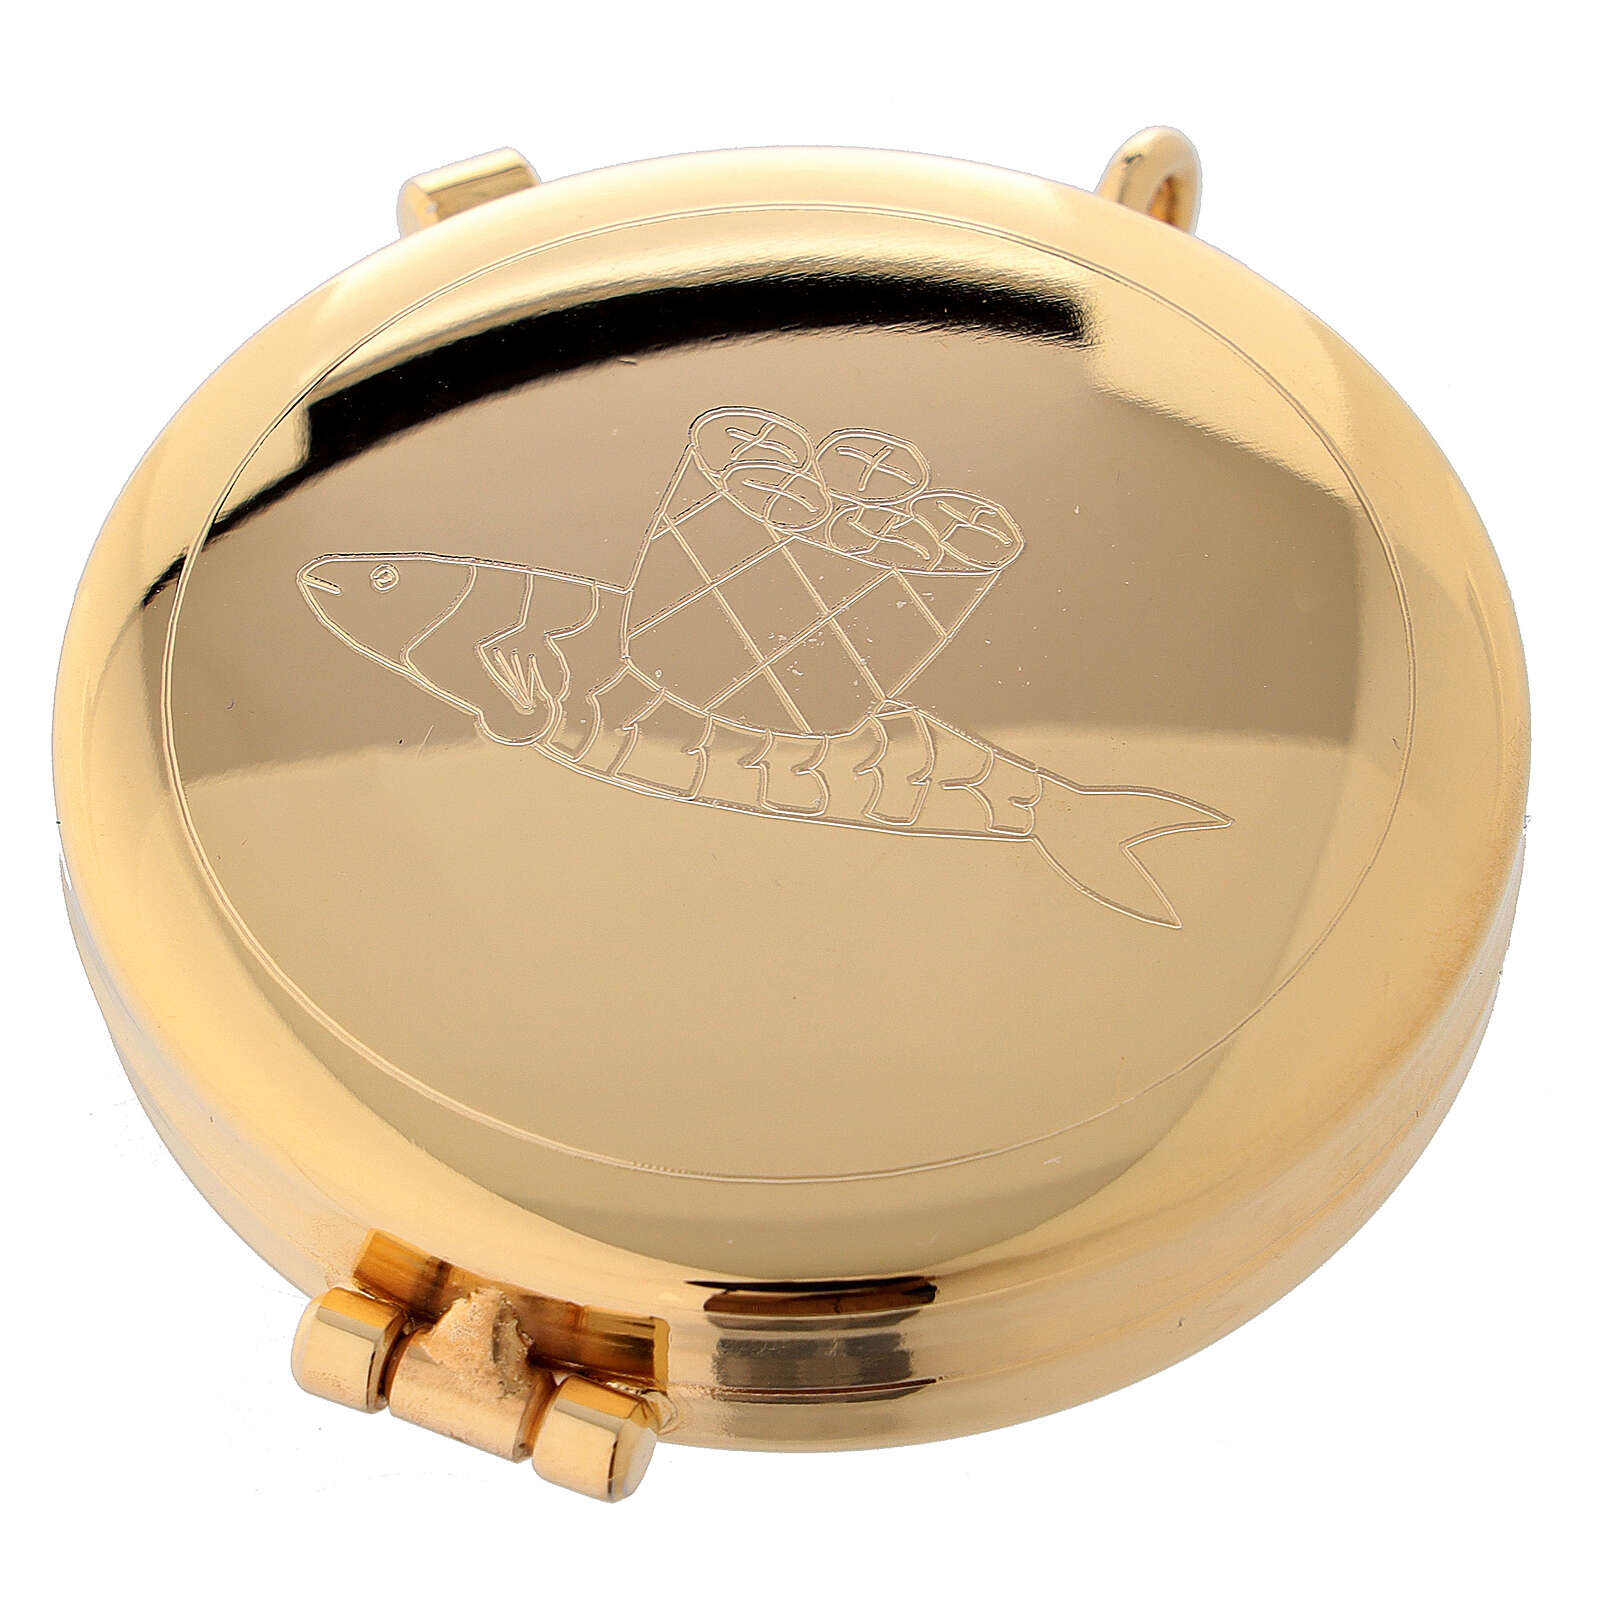 Gold plated pyx with loaves and fish engraving 2 in 3